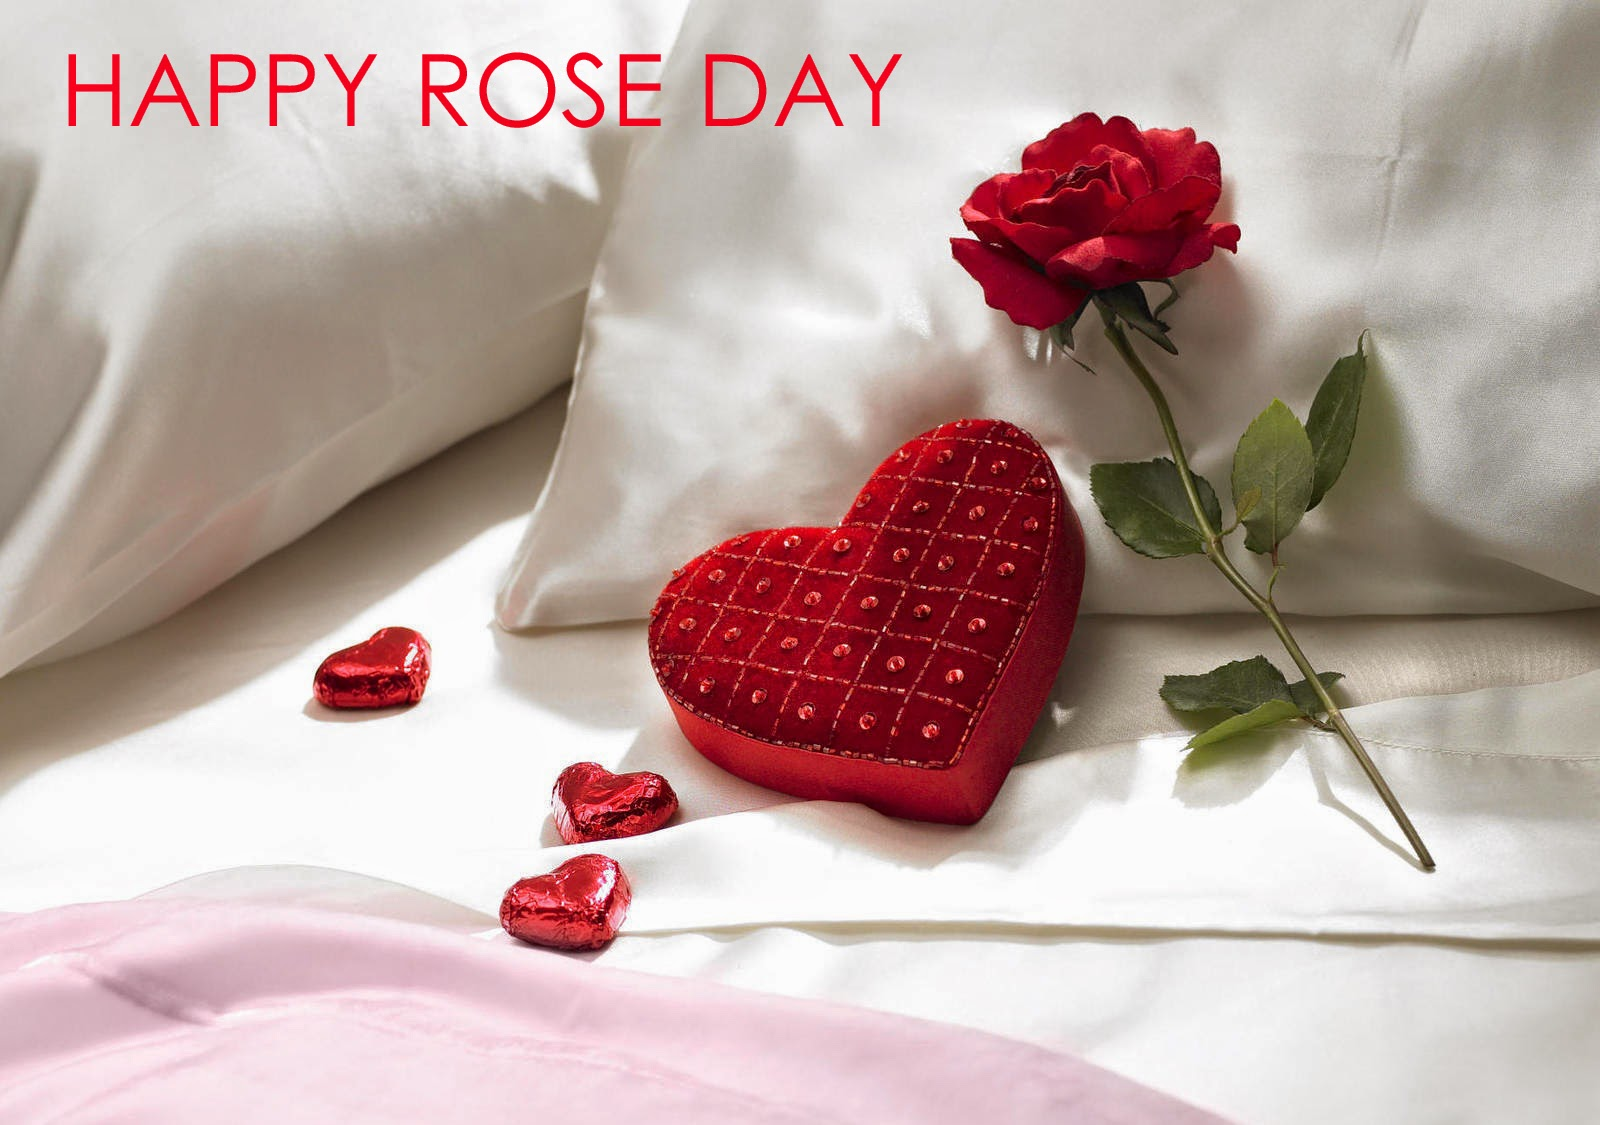 Red Roses Wallpapers HD A39 rose day